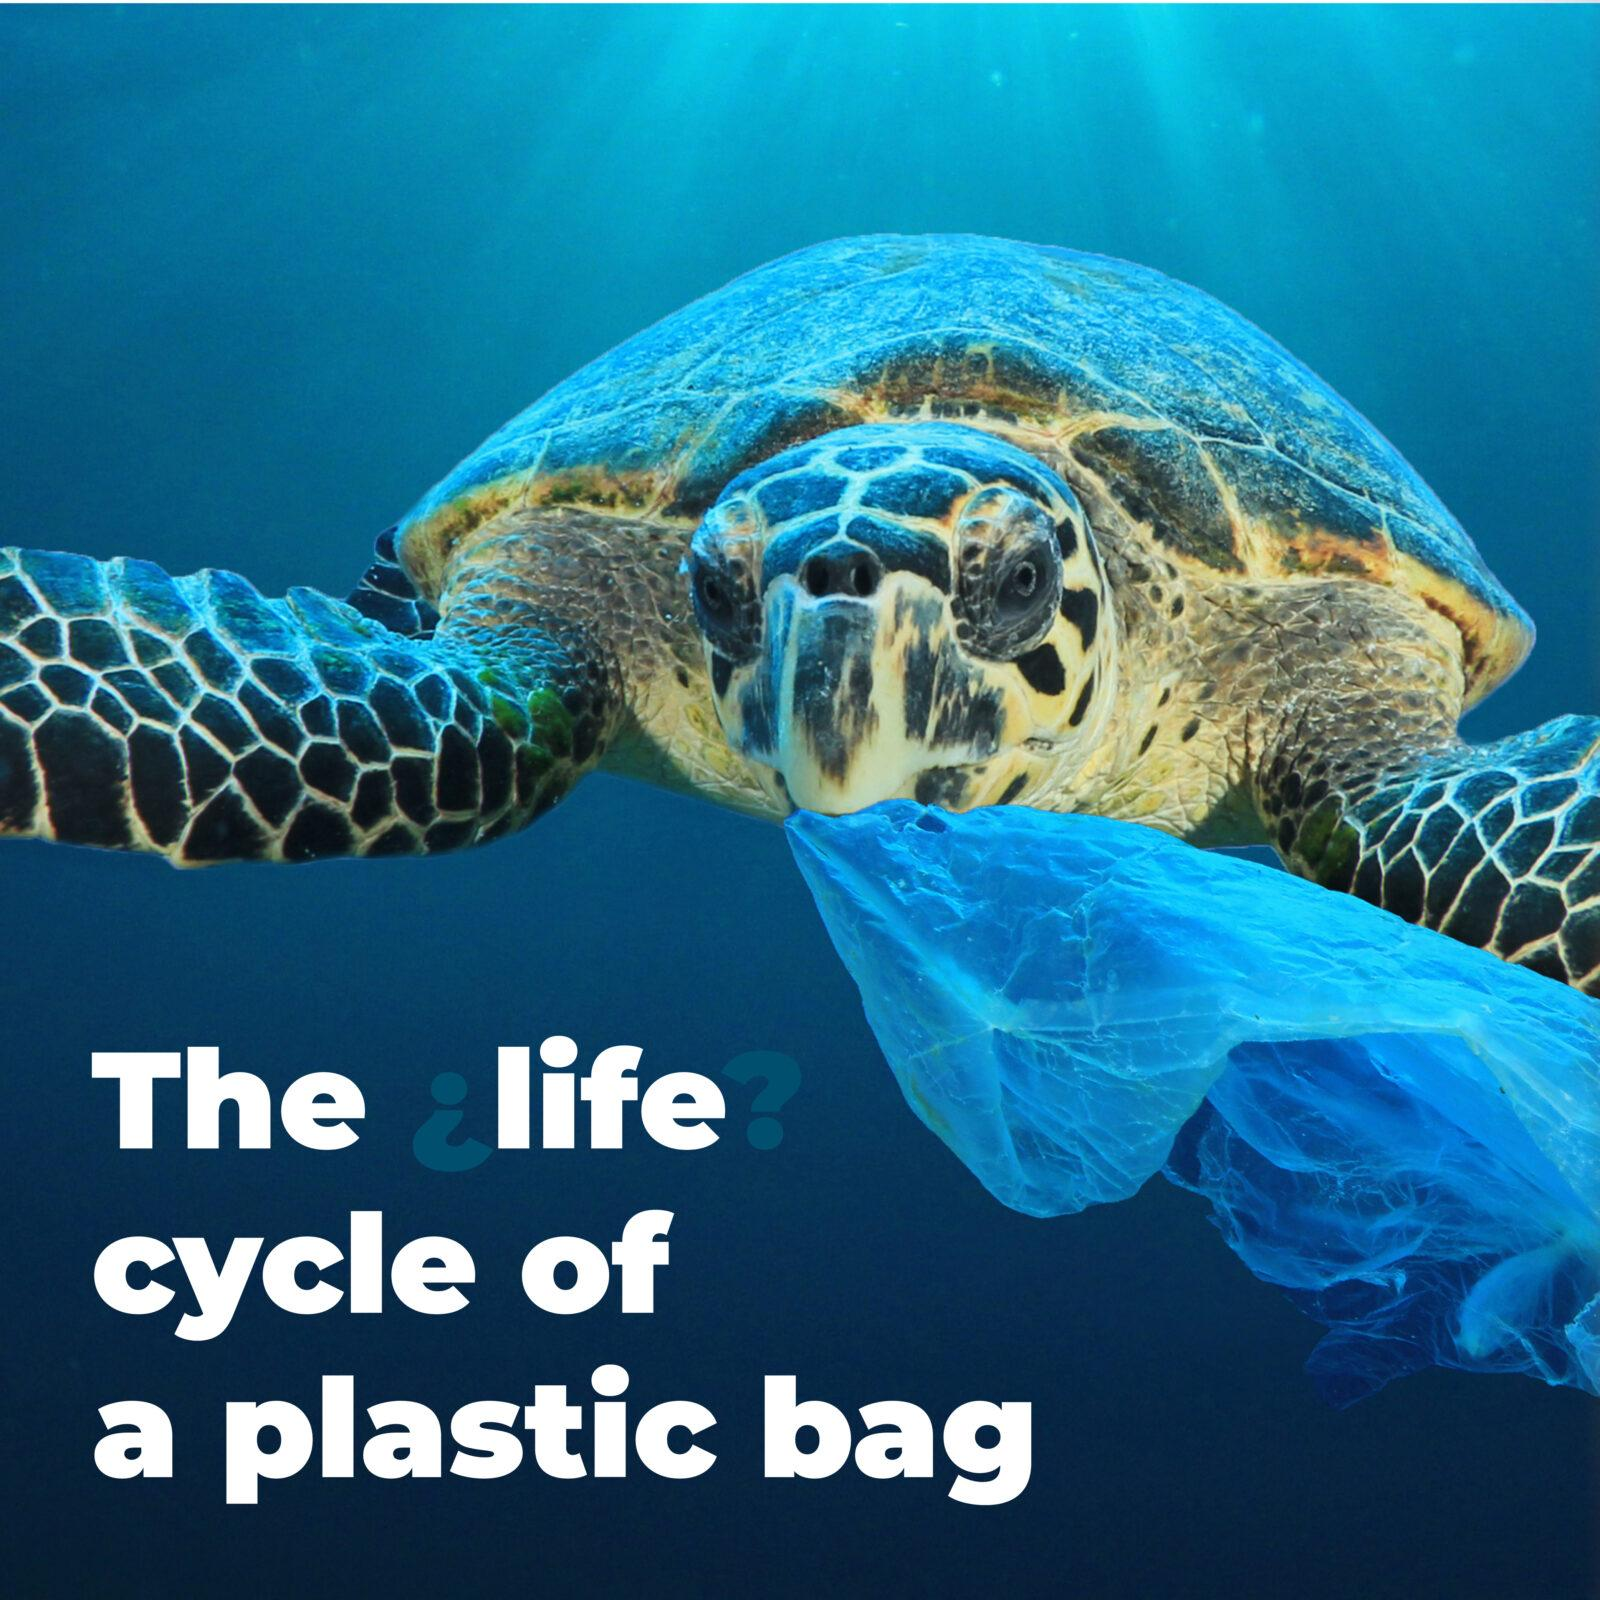 The life cycle of a plastic bag